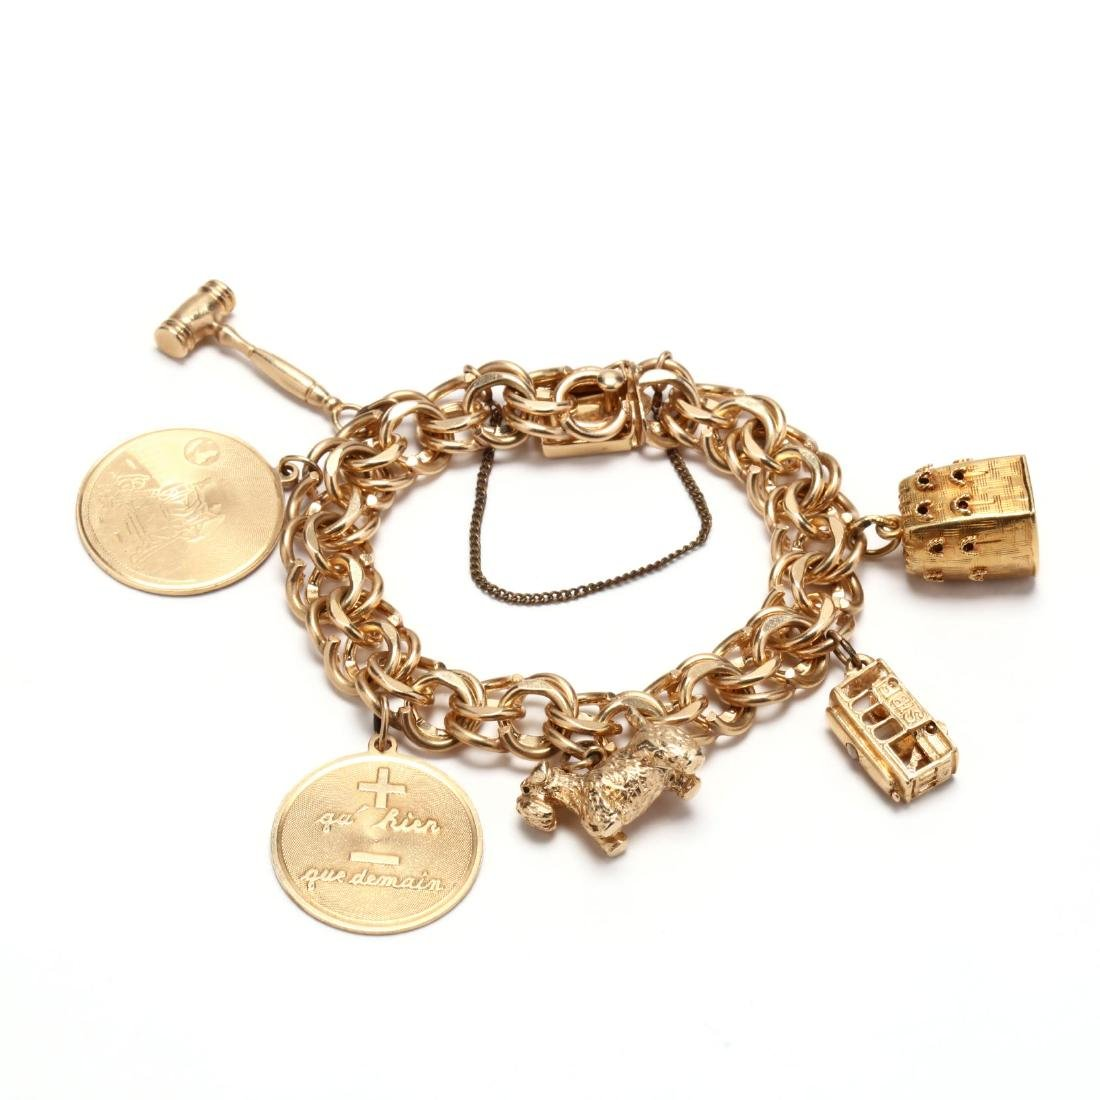 Gold Charm Bracelet and Charms - 2